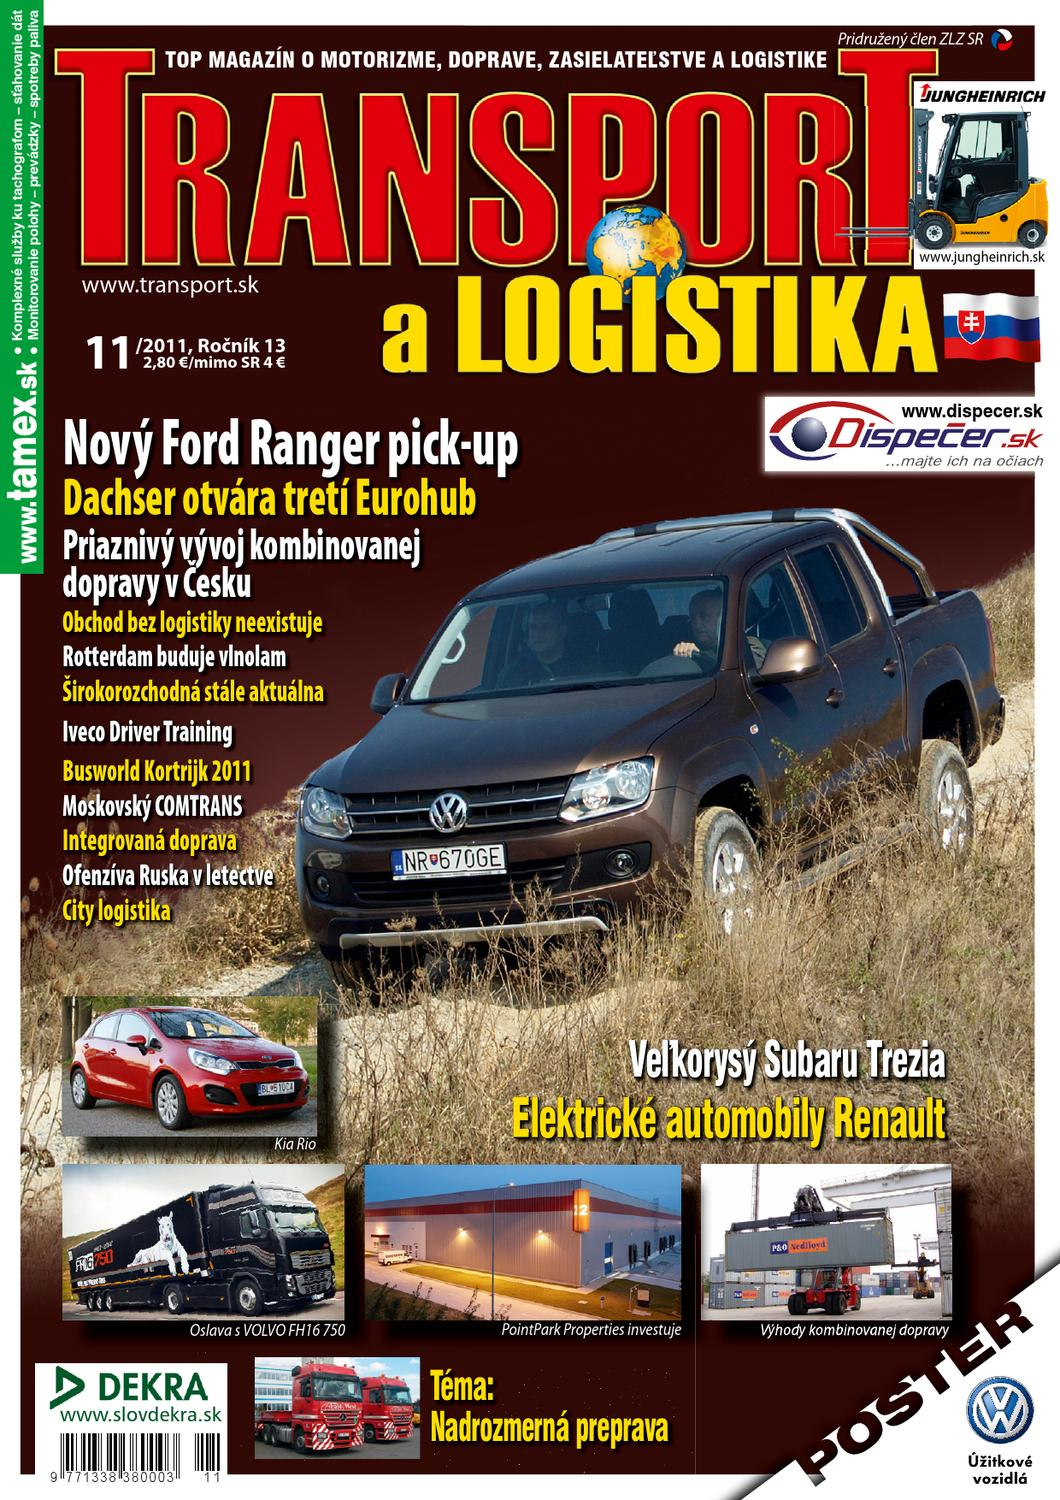 TRANSPORT a LOGISTIKA 11 2011 (SK) by Rasto Bujna - issuu 891f3977be3